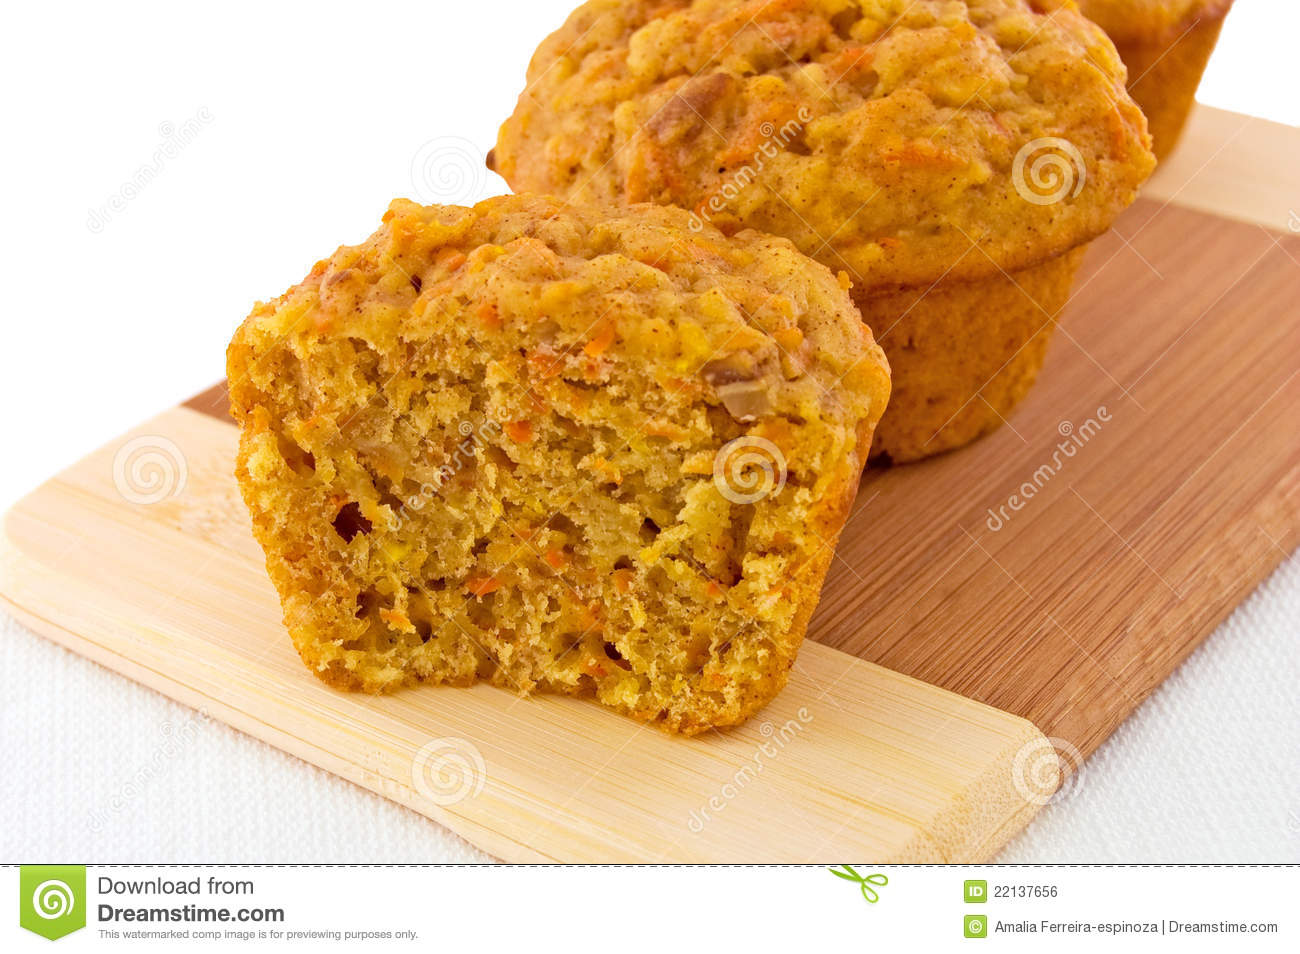 Carrot Muffins Royalty Free Stock Image - Image: 22137656